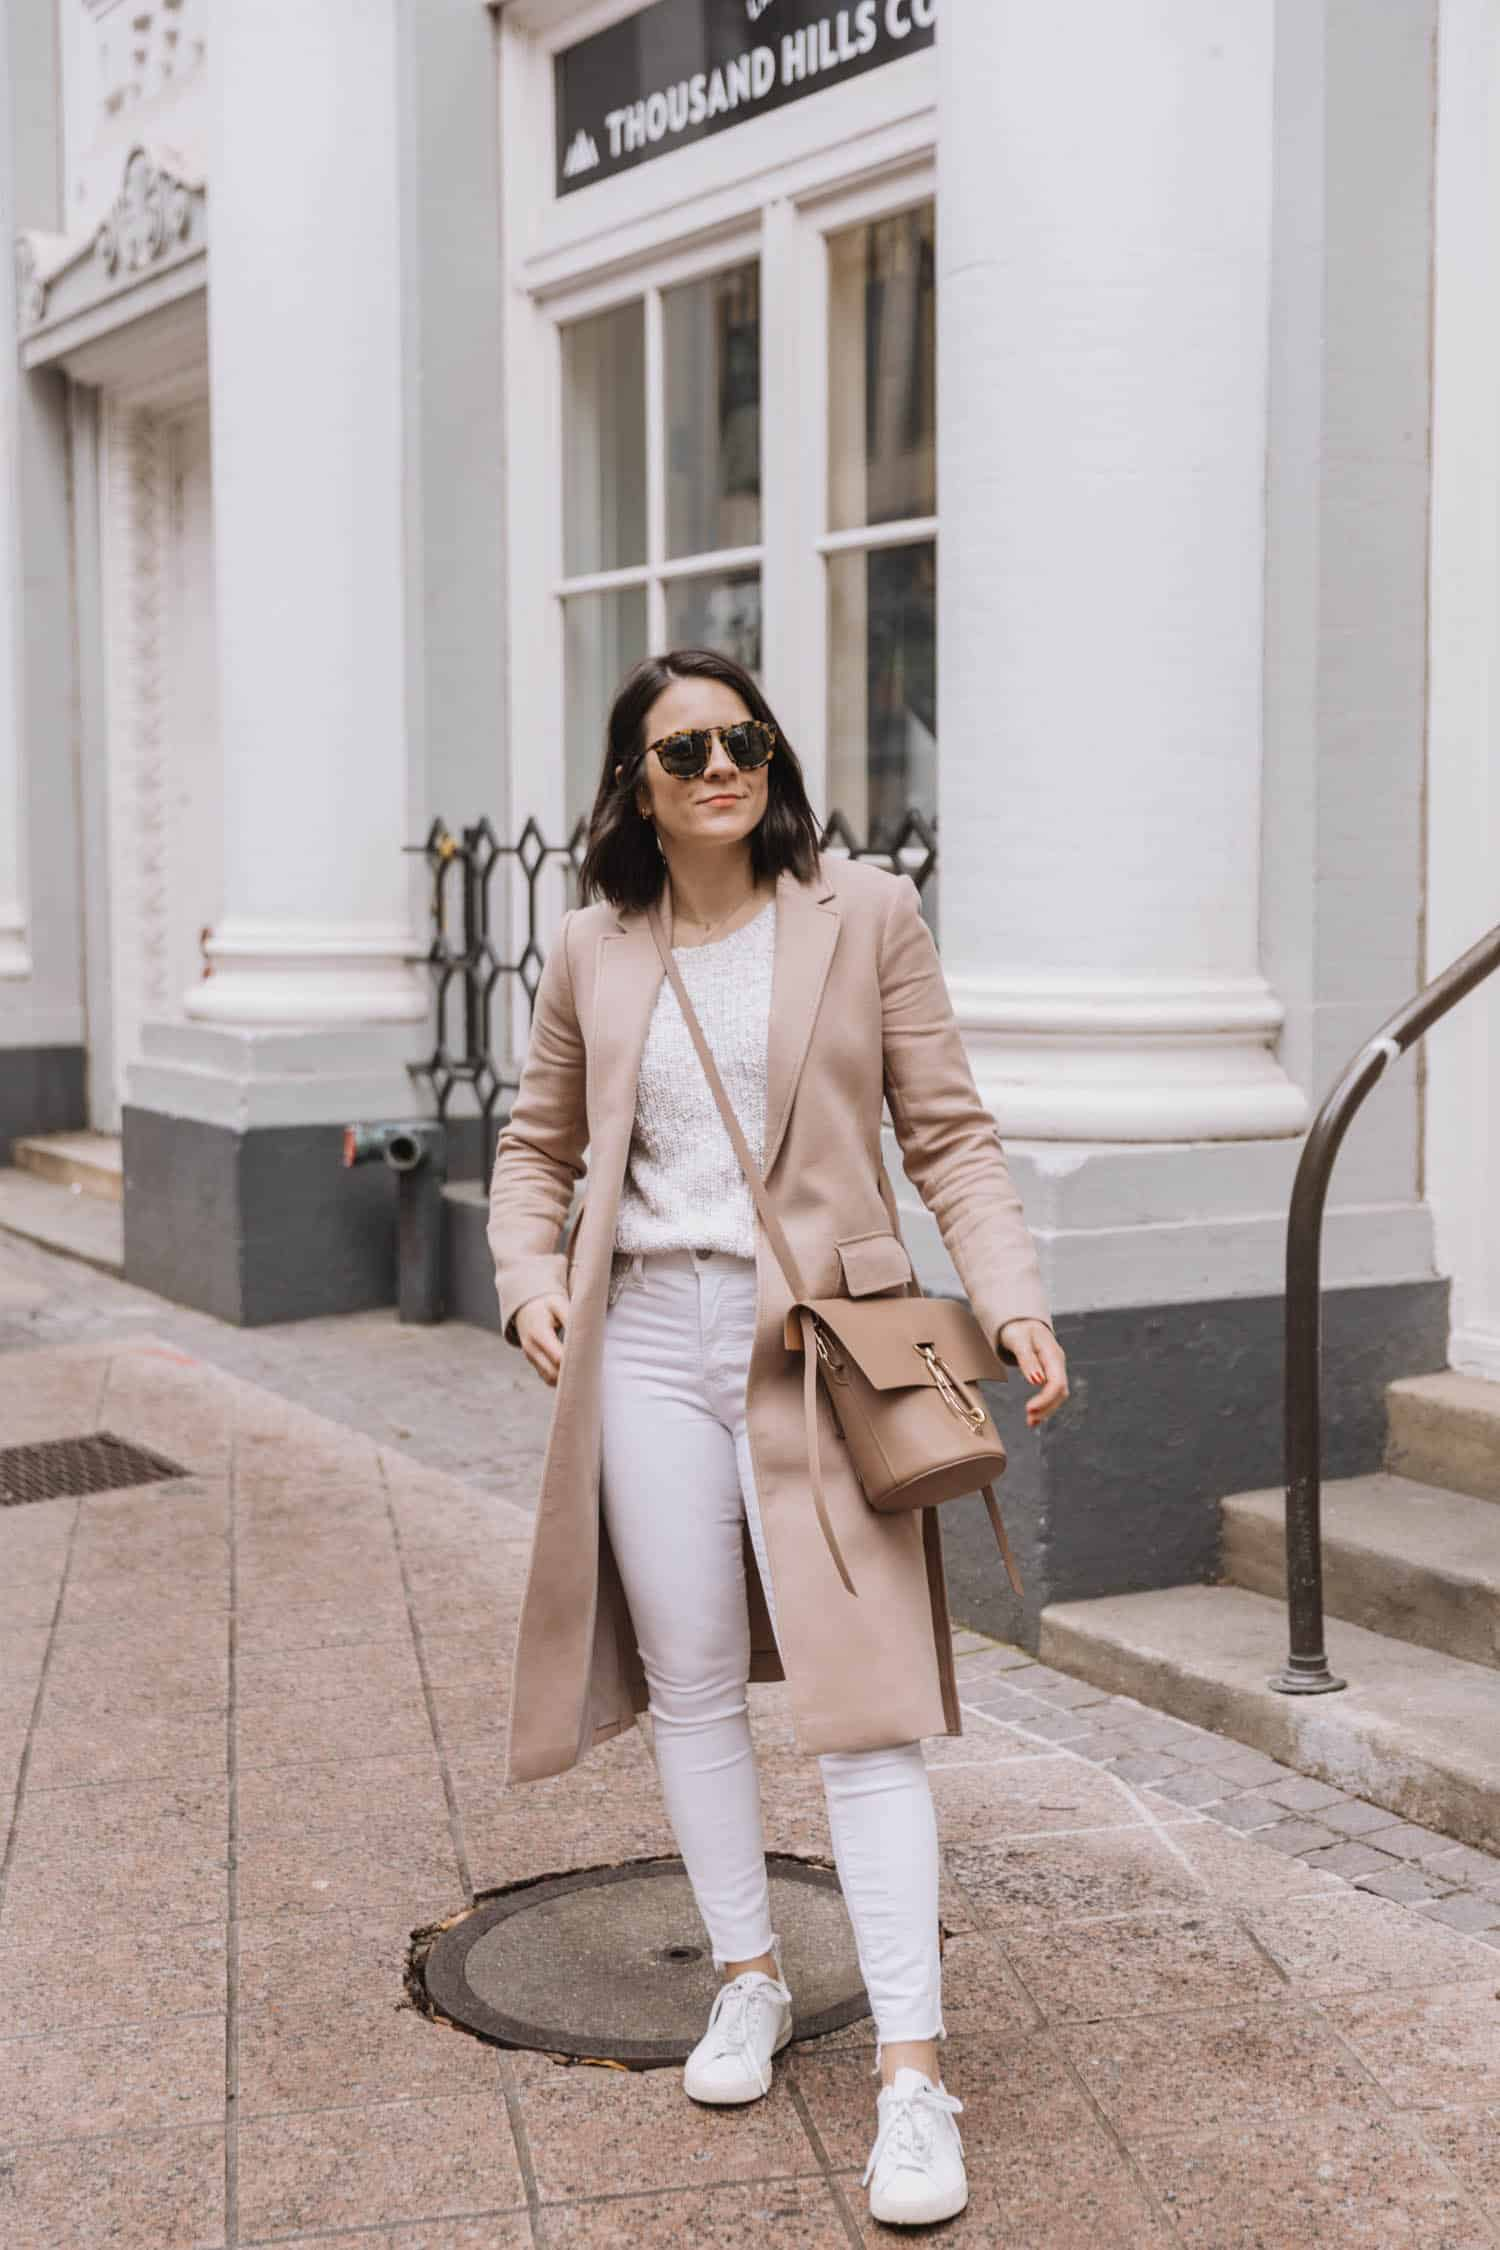 styling white in winter